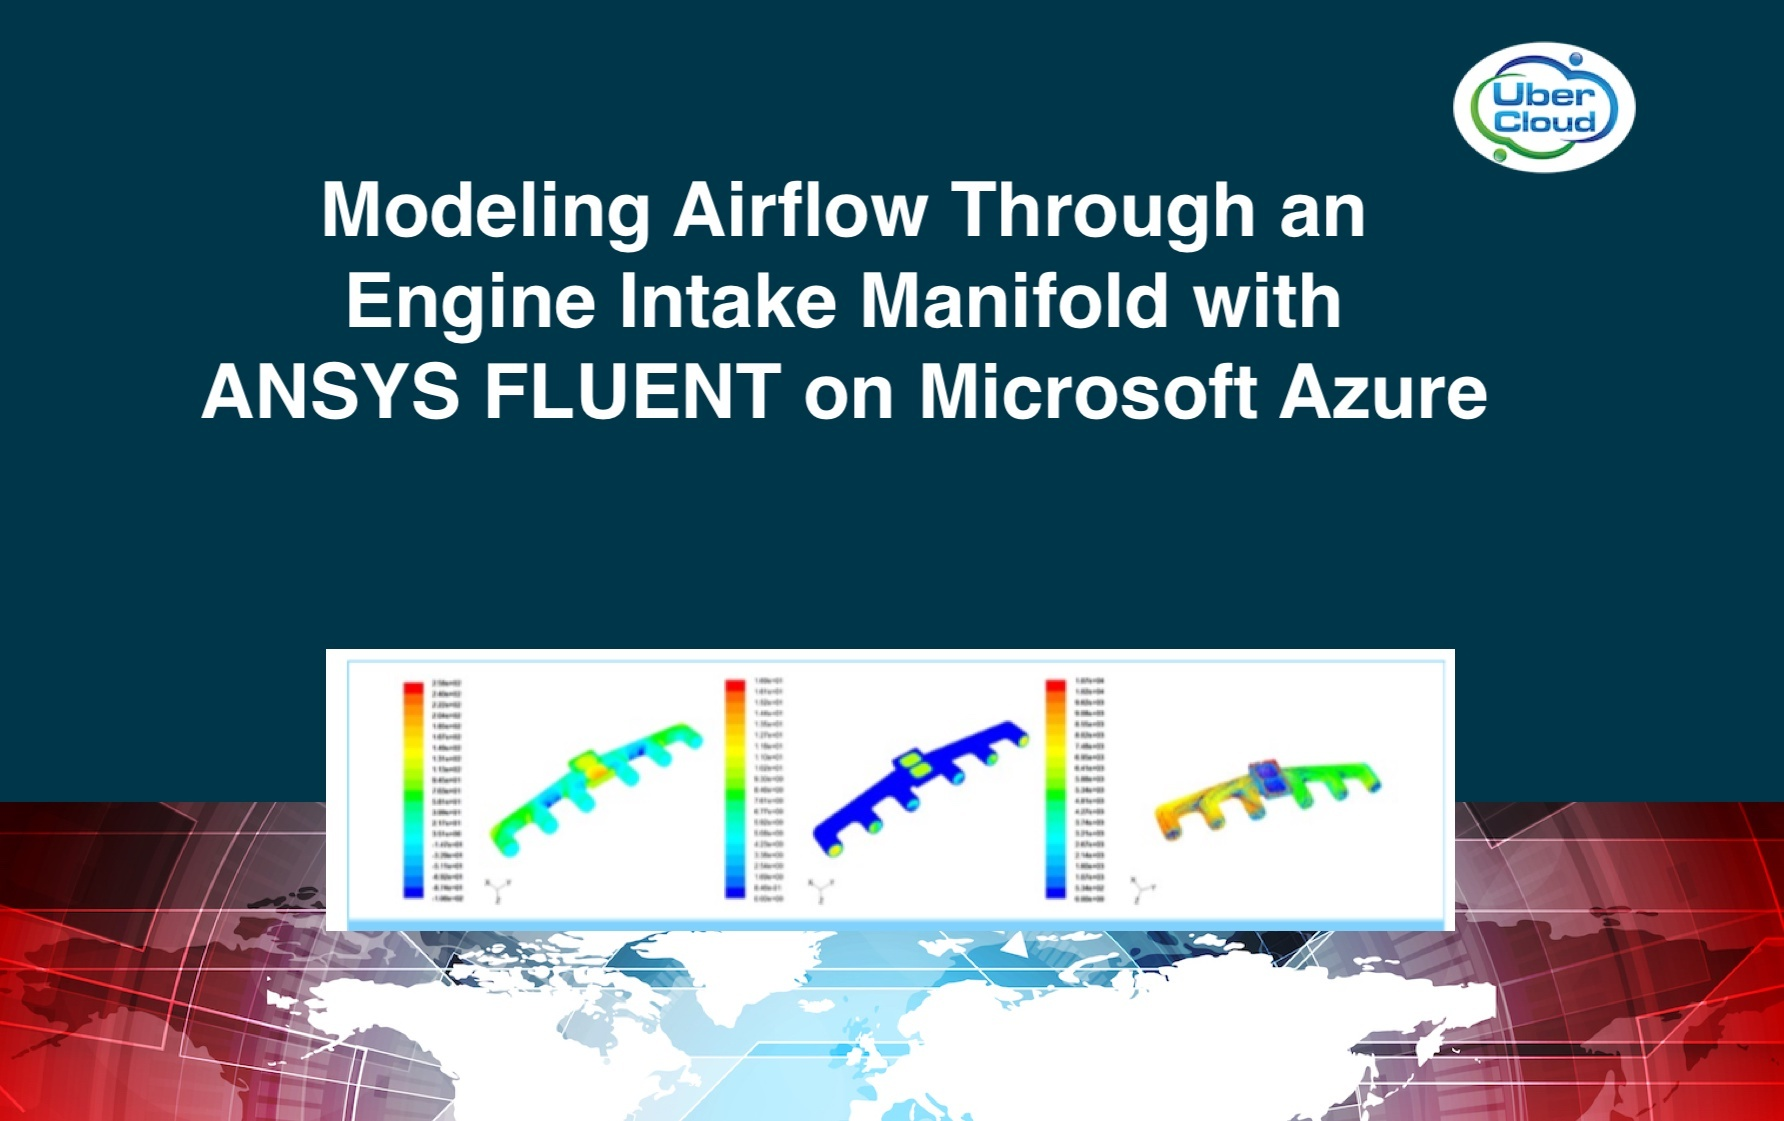 ANSYS Fluent in the Cloud